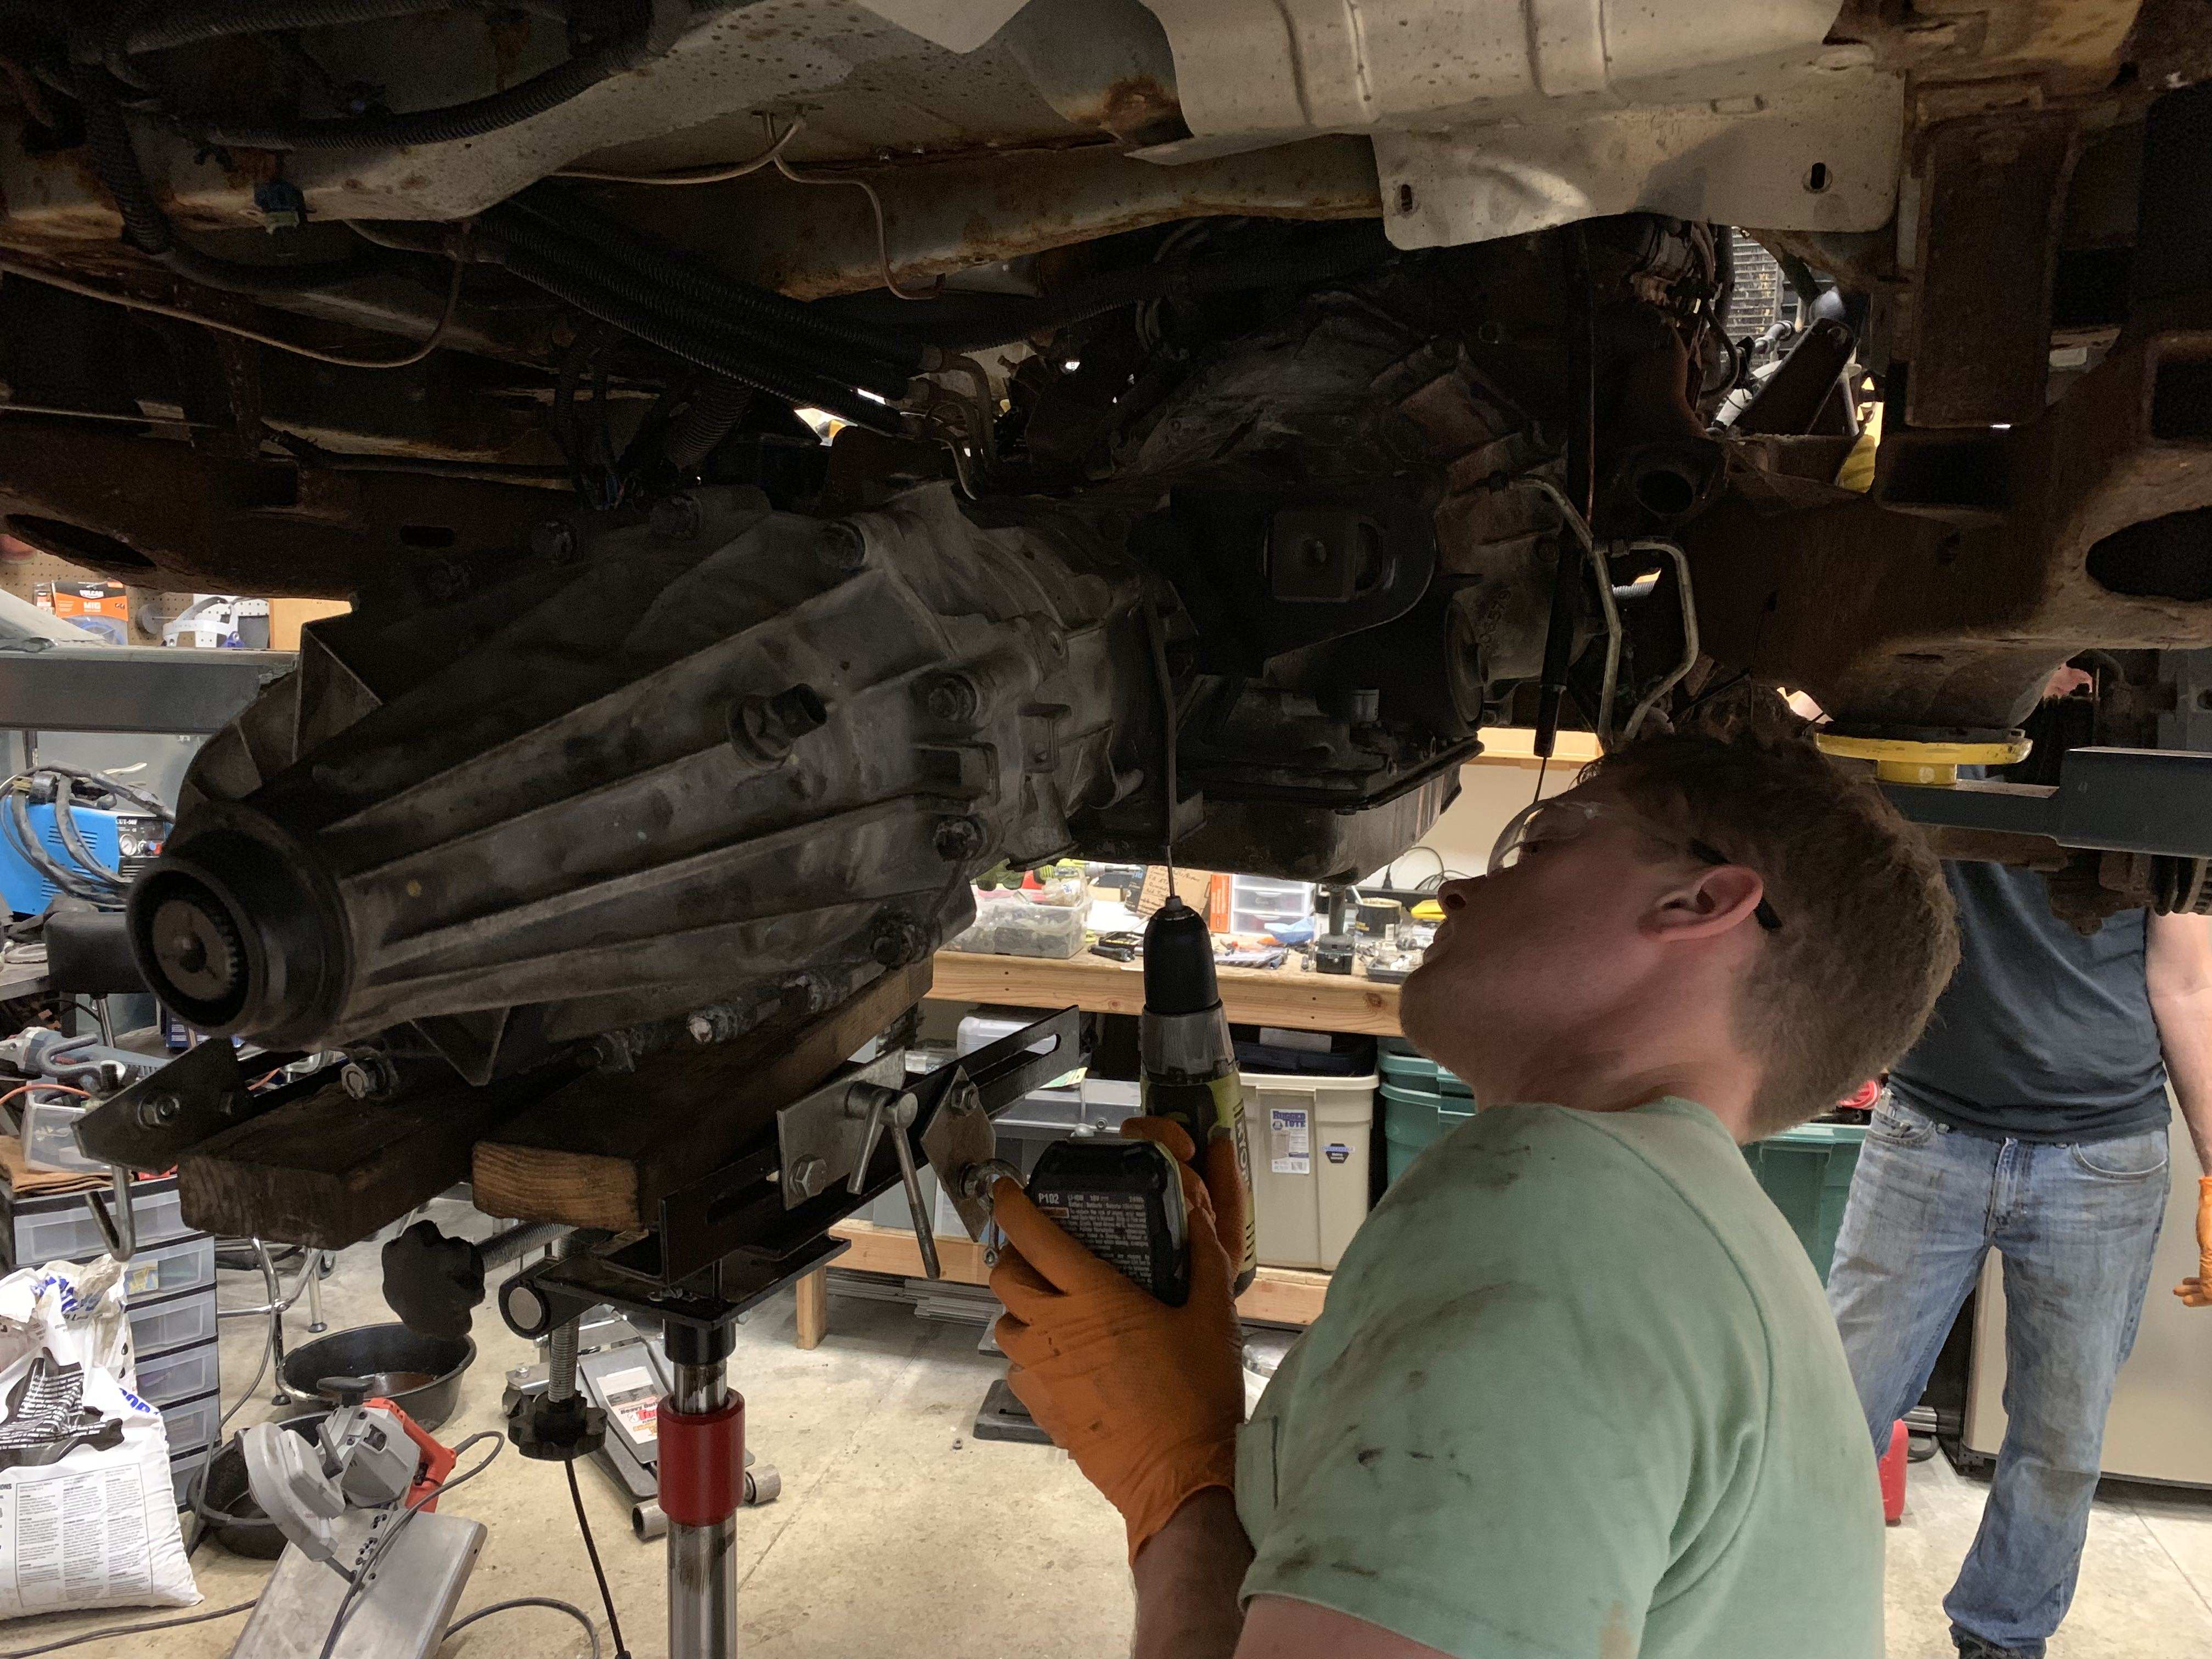 Leatherman engineer fixing the transmission on the van.